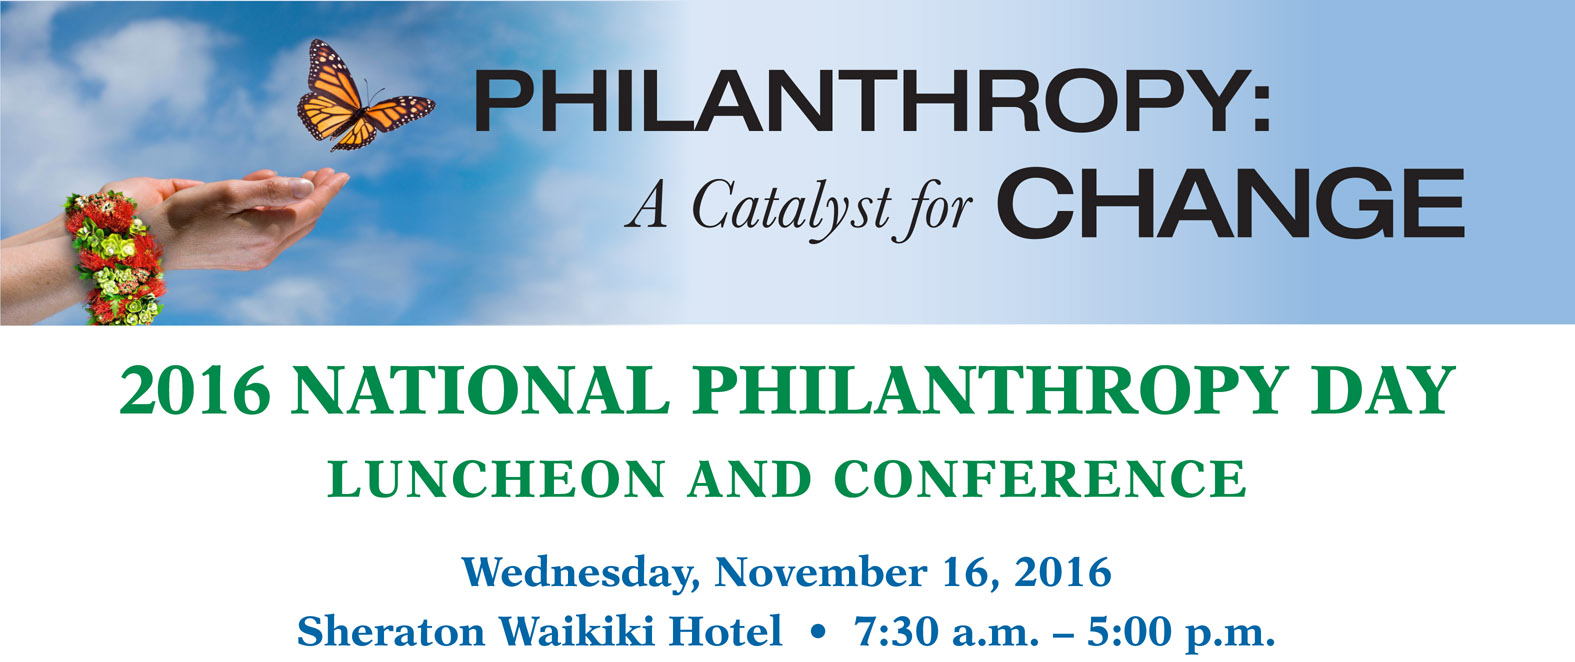 National Philanthropy Day 2016